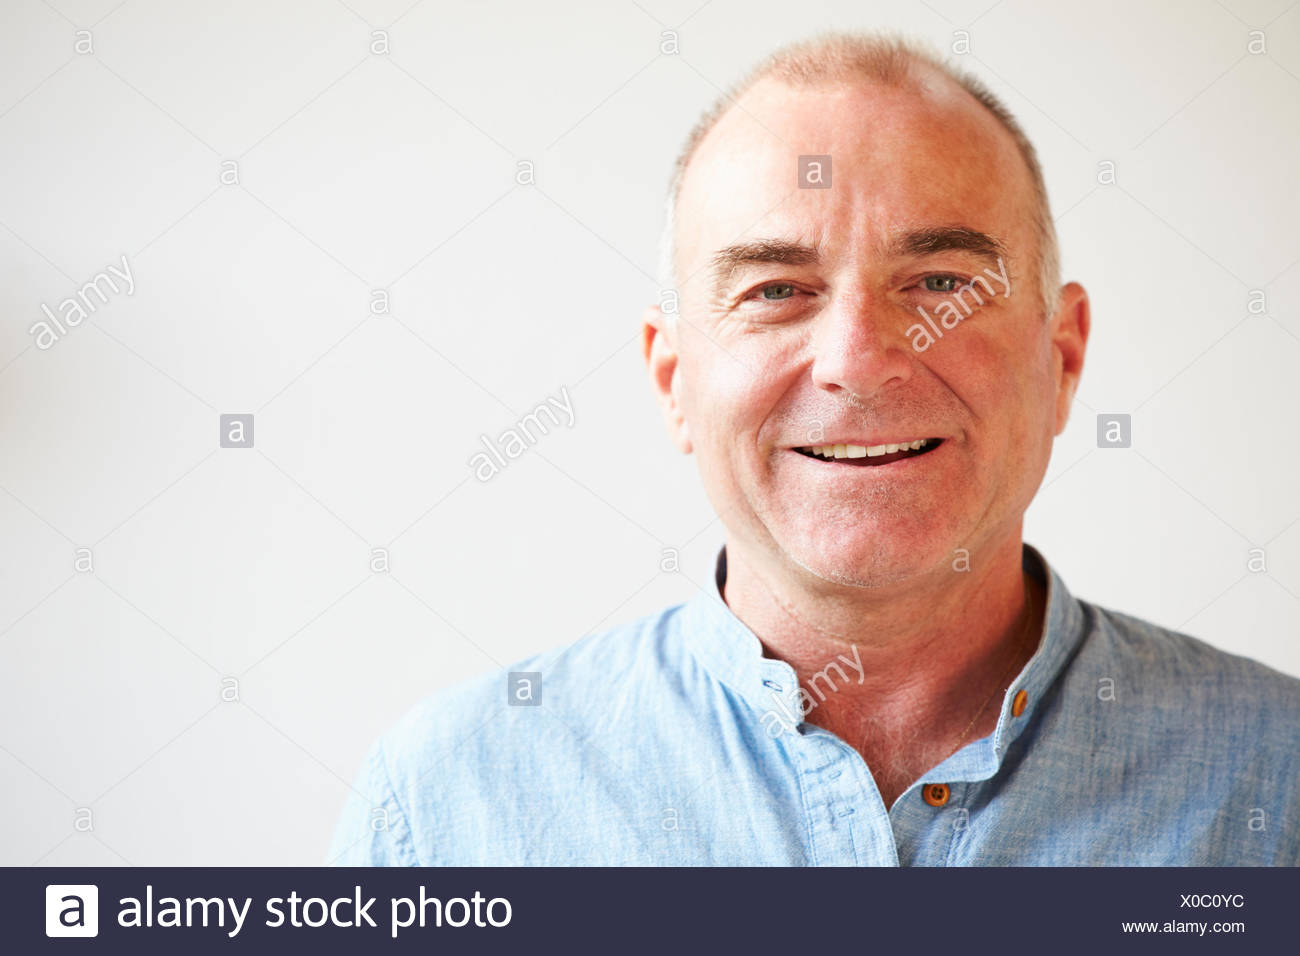 Portrait Of Middle Aged Man Standing By Wall - Stock Image